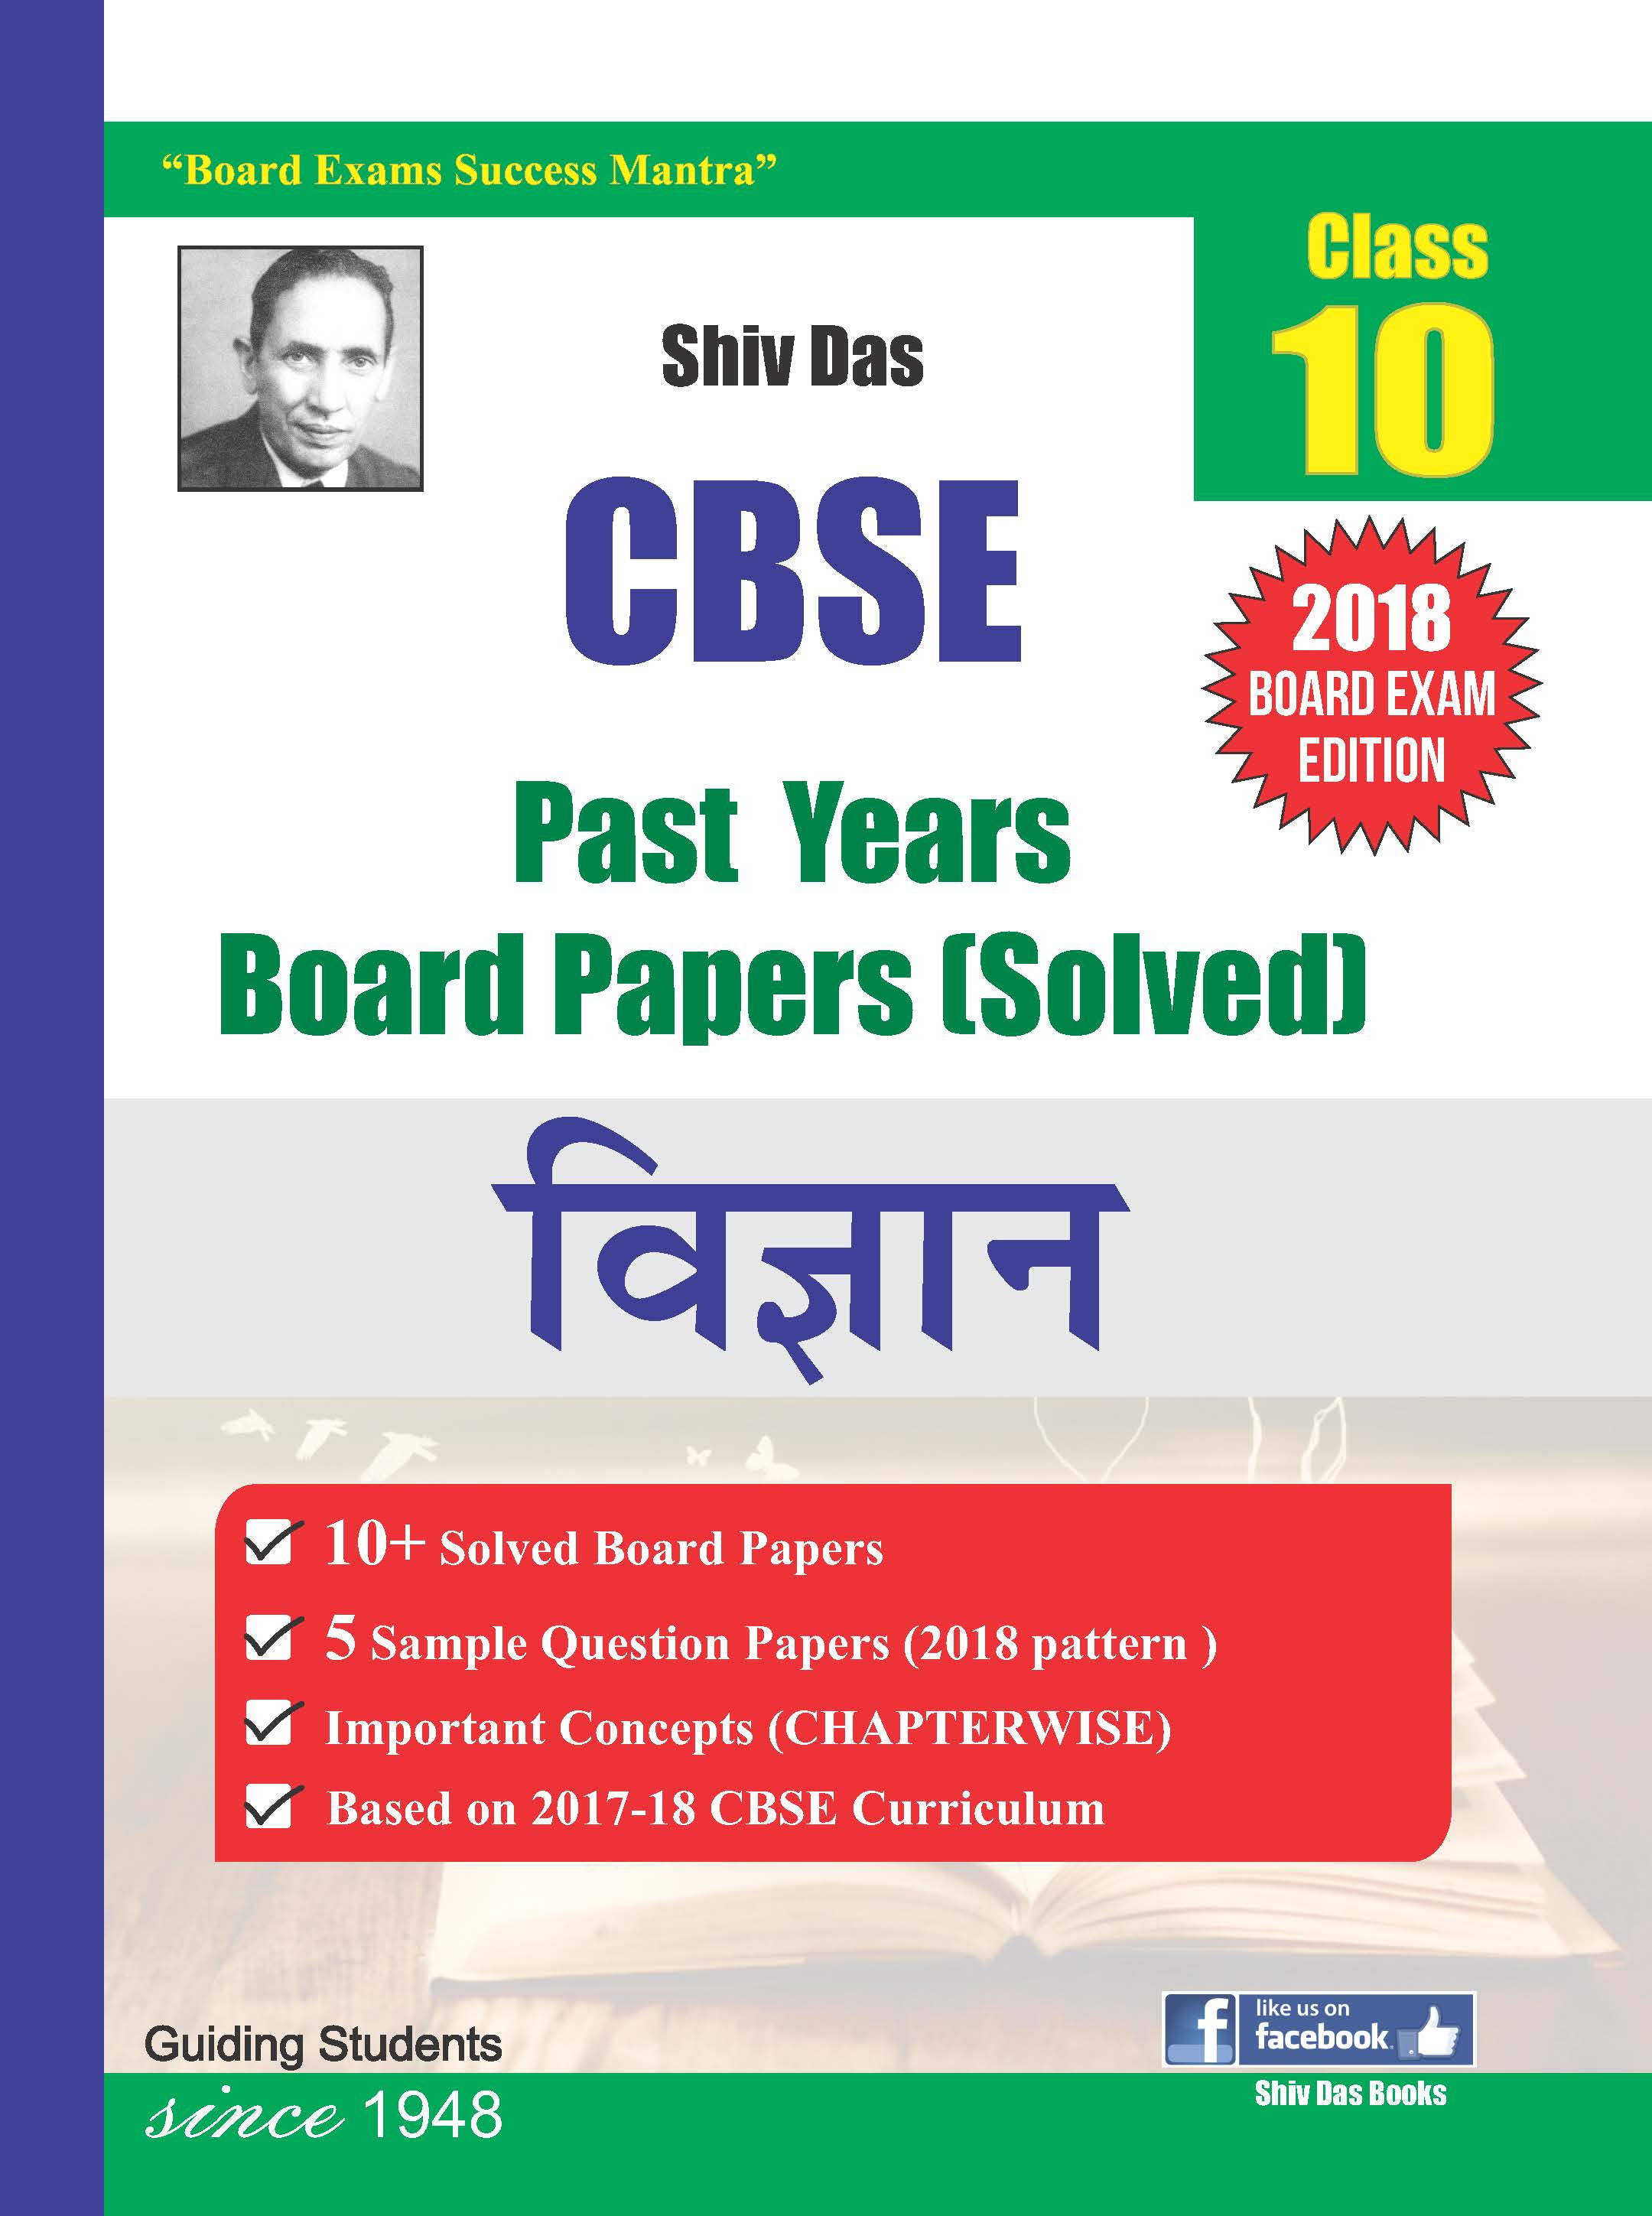 Class 10 CBSE Past Year Board Papers (Solved) Vigyan